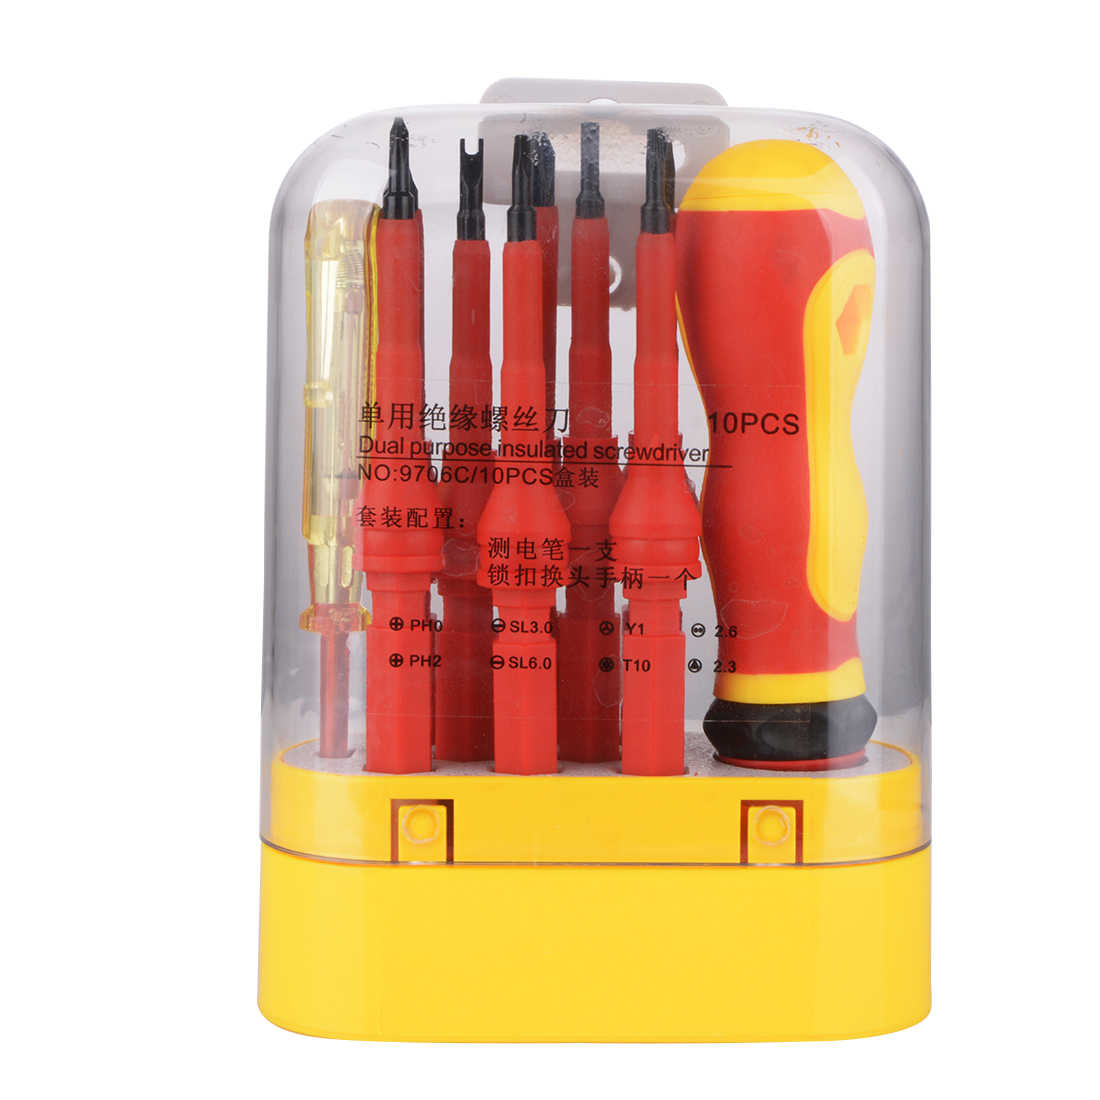 10 In 1 Multifunction Electrician Insulated Screwdriver Set Multi-head  Non-slip Chrome Vanadium Alloy Screwdrivers Set Tool